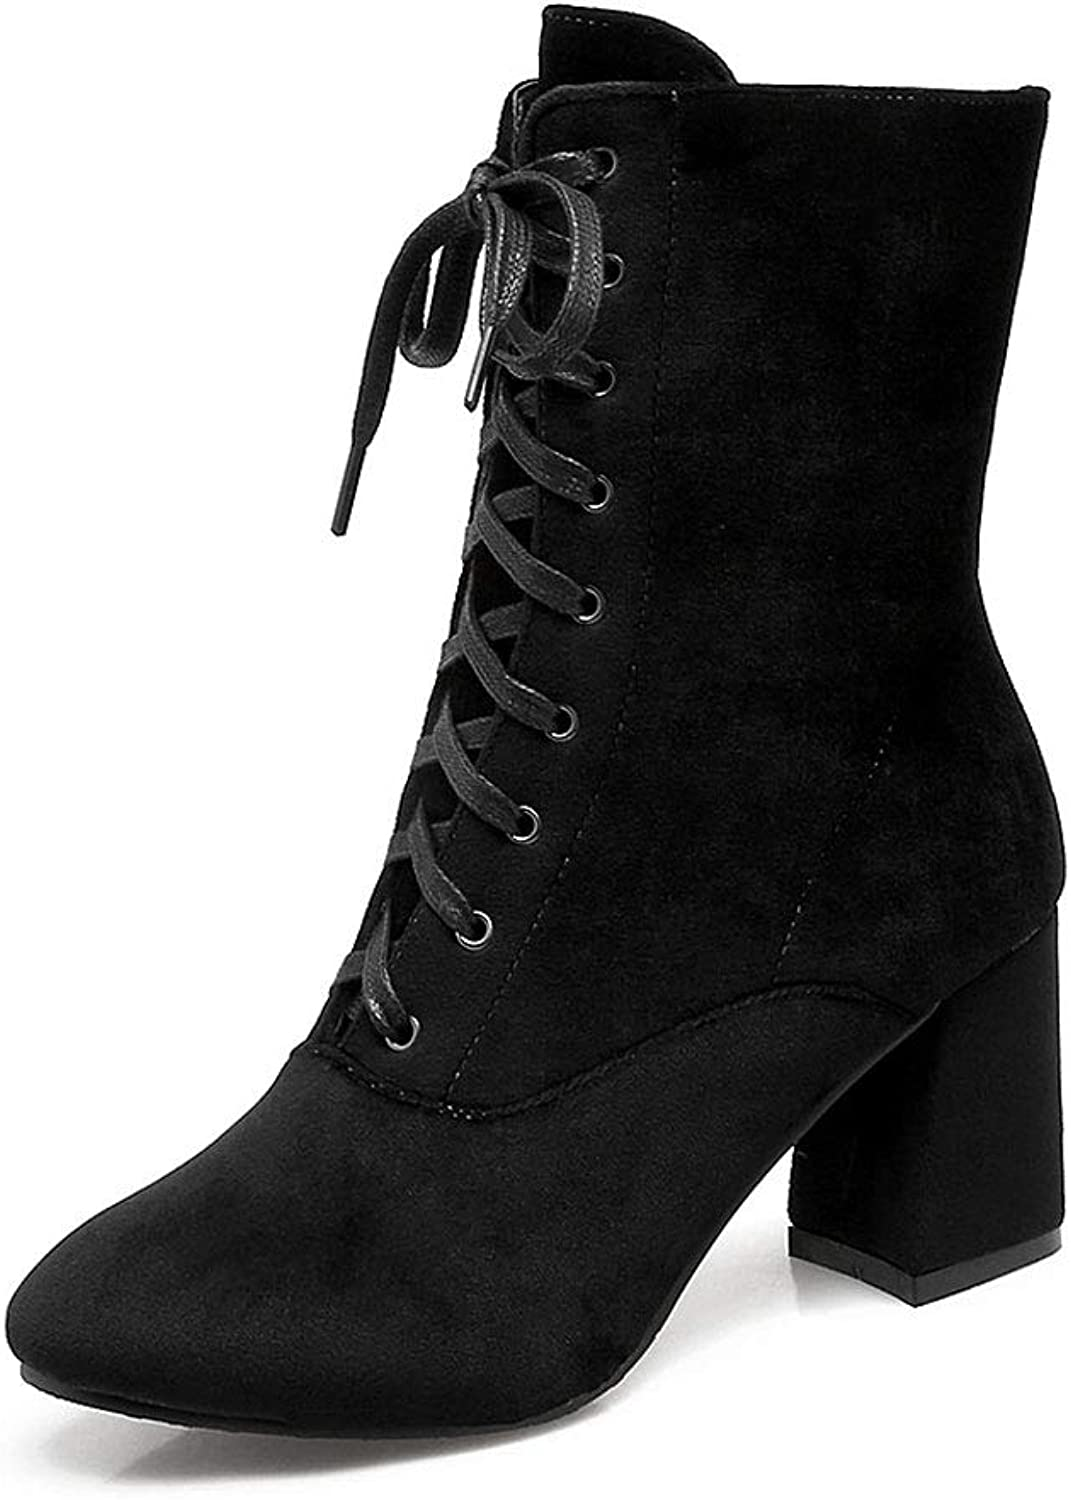 High-Heeled Lace-Up Boots, Thick-Heeled Round-Headed Knight Boots in The Tube with A Martin Boots Waterproof Platform Comfortable Non-Slip Women's shoes